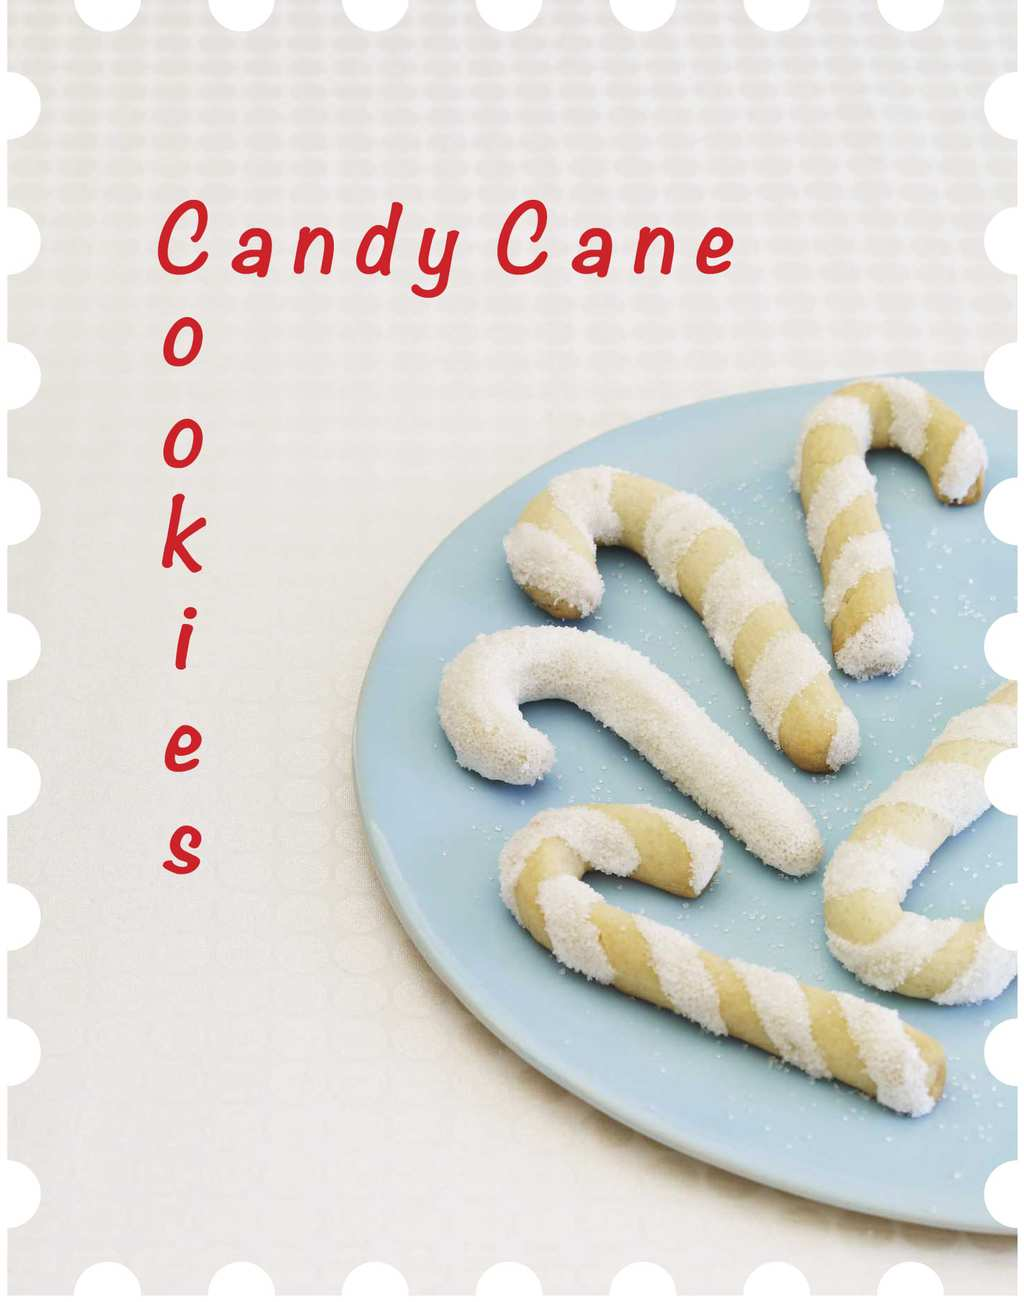 Candy Cane stamp